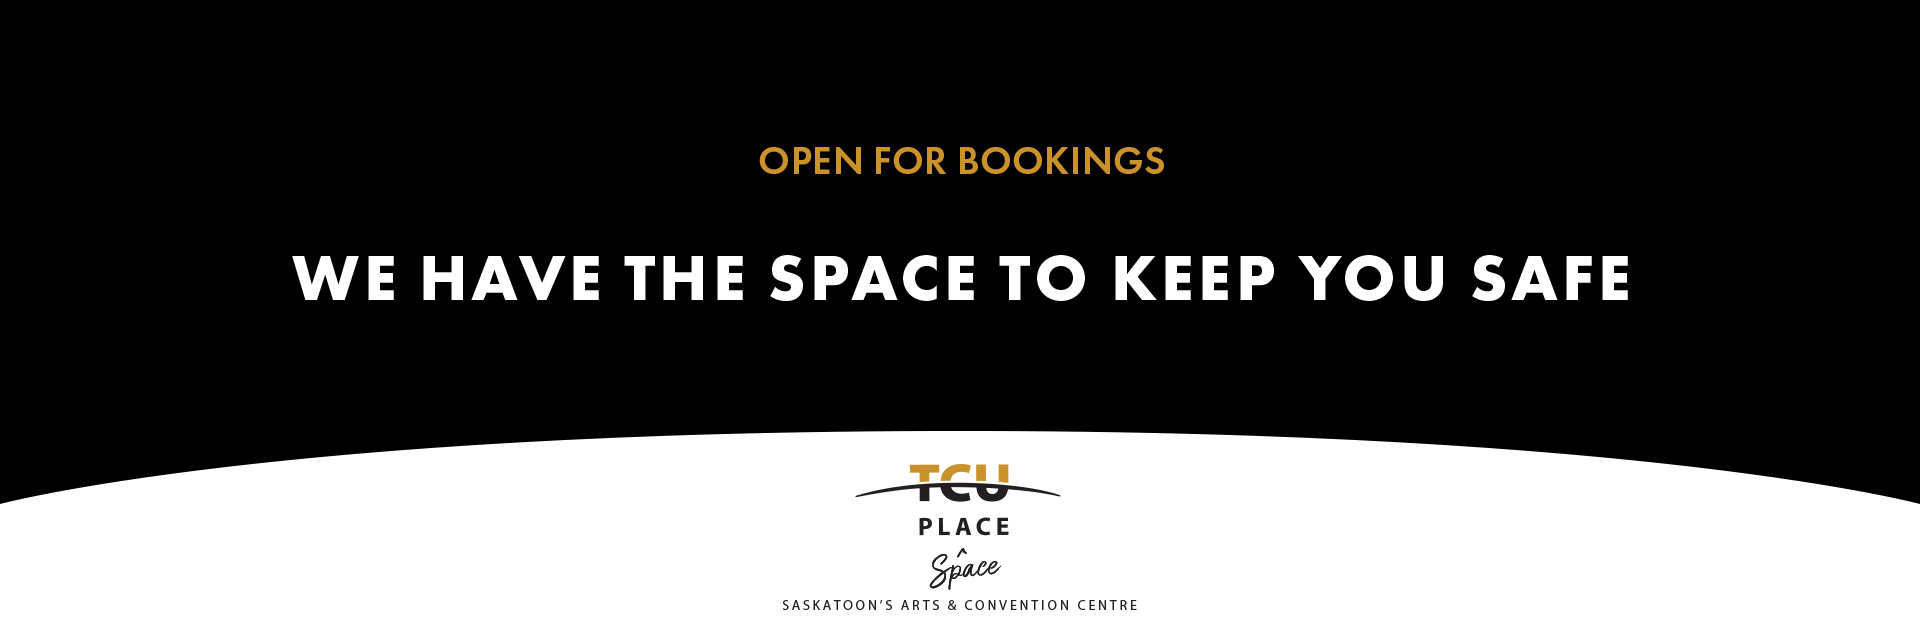 Open for Bookings - We Have The Space To Keep You Safe